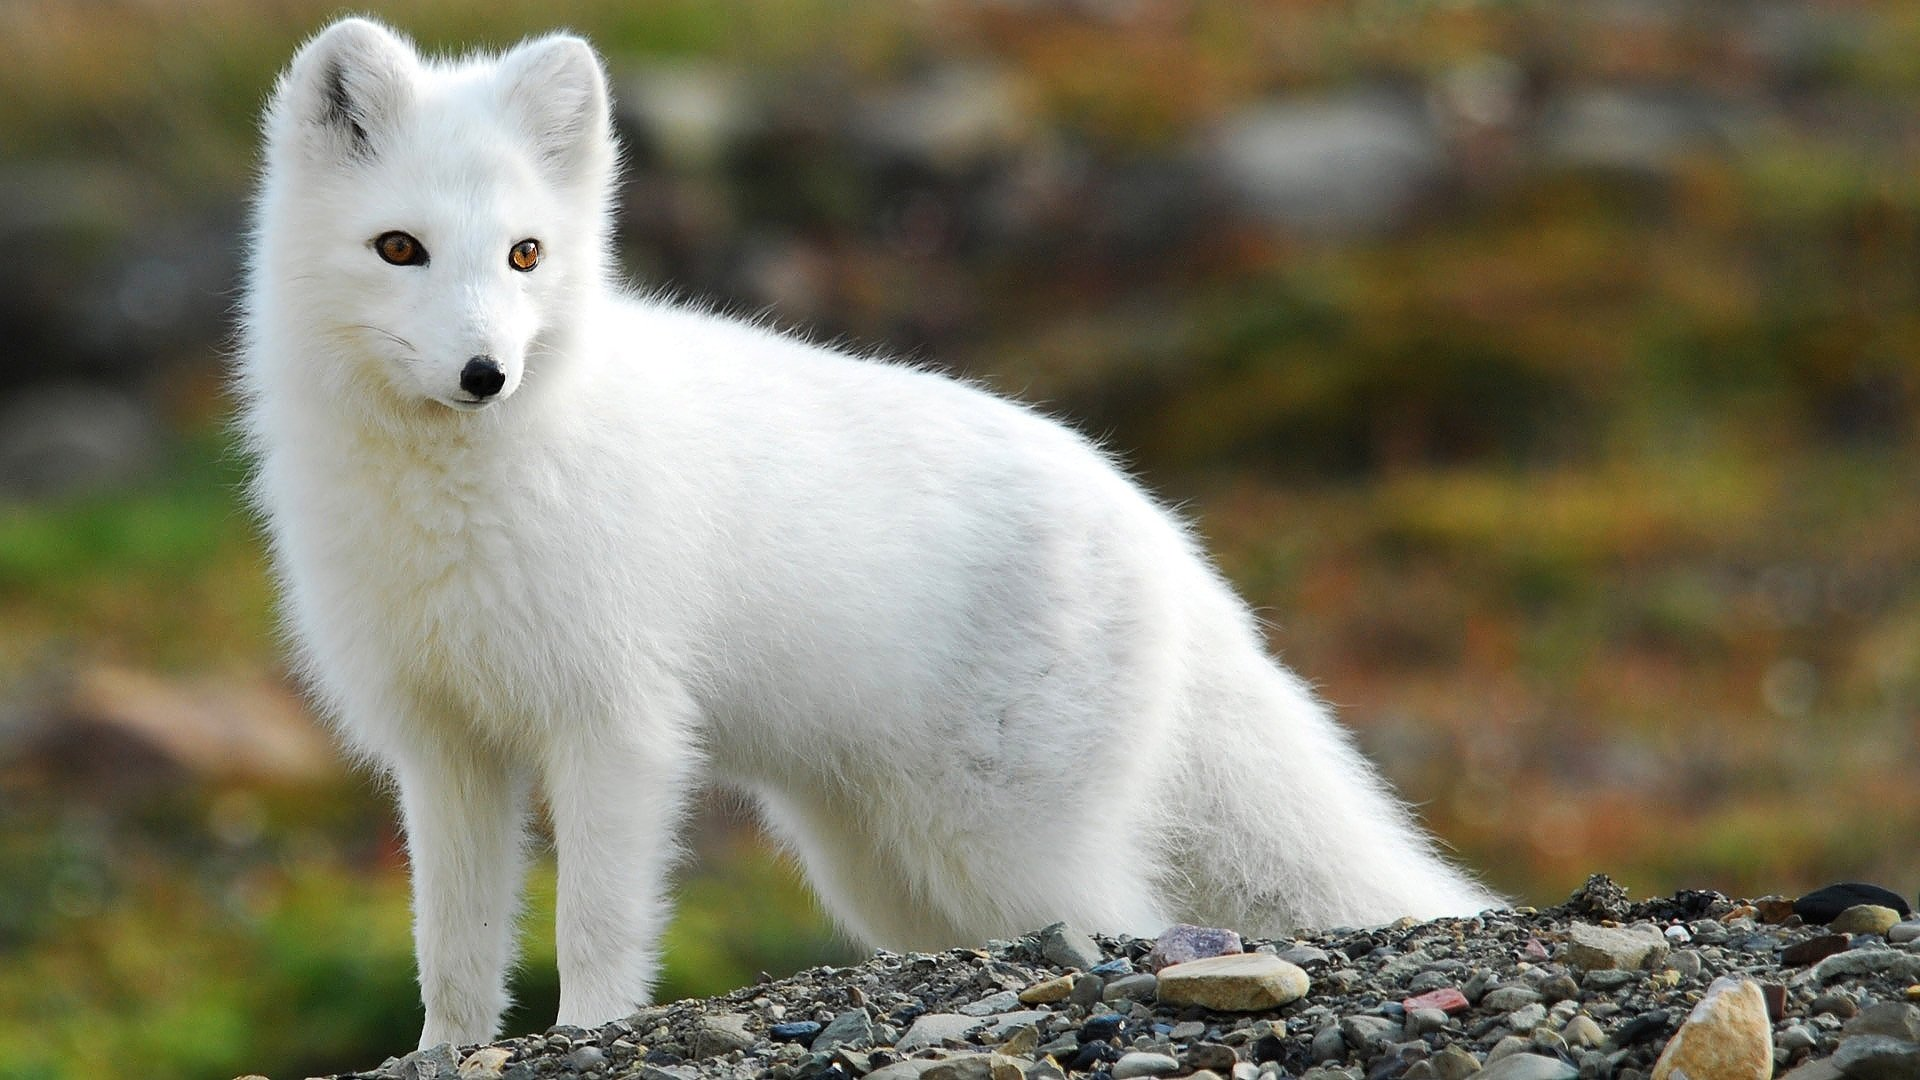 Download full hd Arctic Fox computer background ID:98736 for free